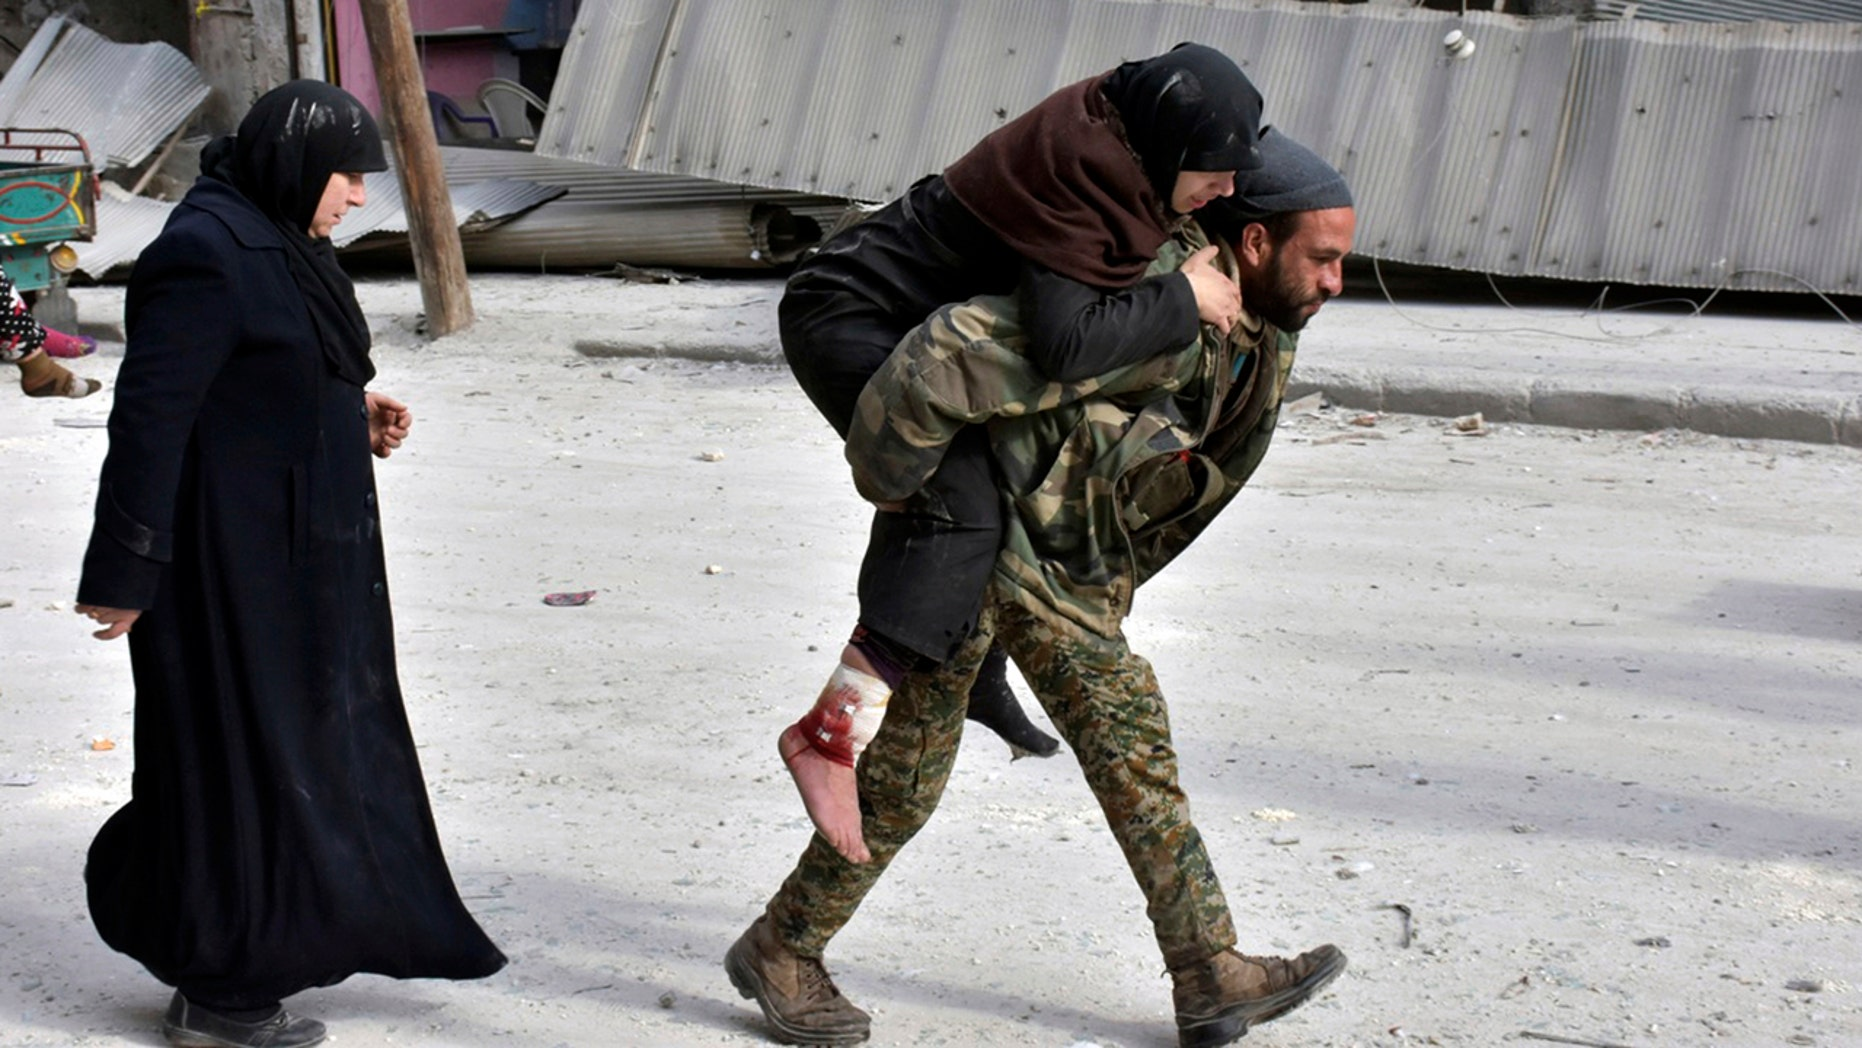 Dec. 12, 2016: In this photo released by the Syrian official news agency SANA, a Syrian soldier carries a wounded woman in eastern Aleppo.